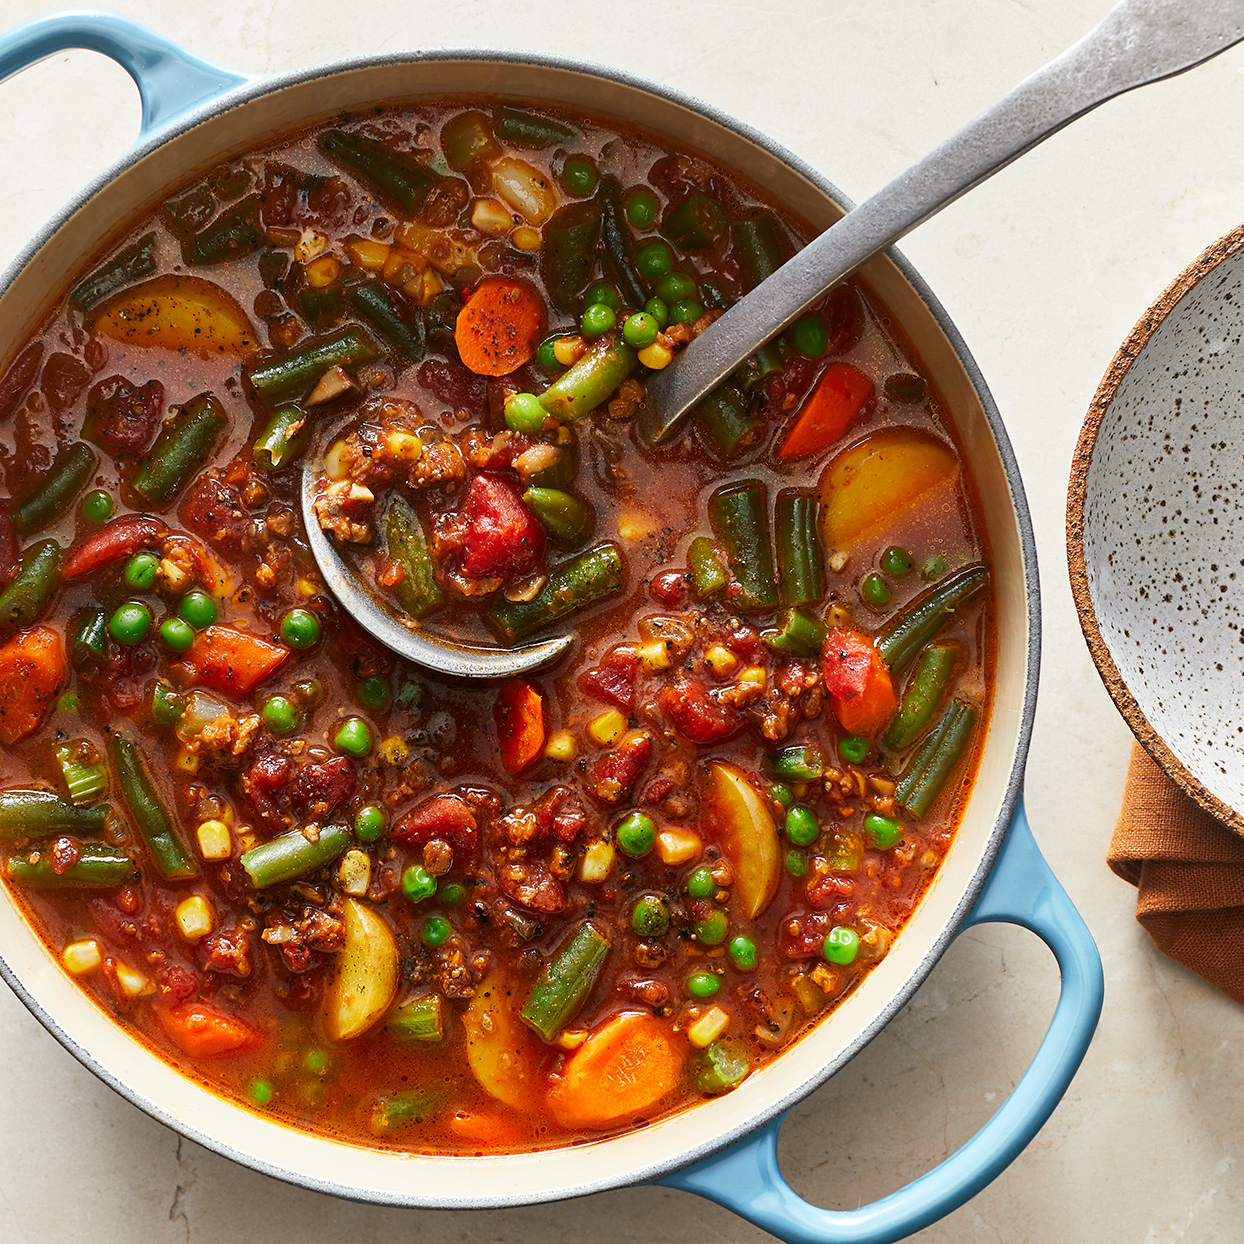 https://www.eatingwell.com/gallery/7870796/30-days-of-money-saving-recipes/clean-out-the-fridge-vegetable-stew/